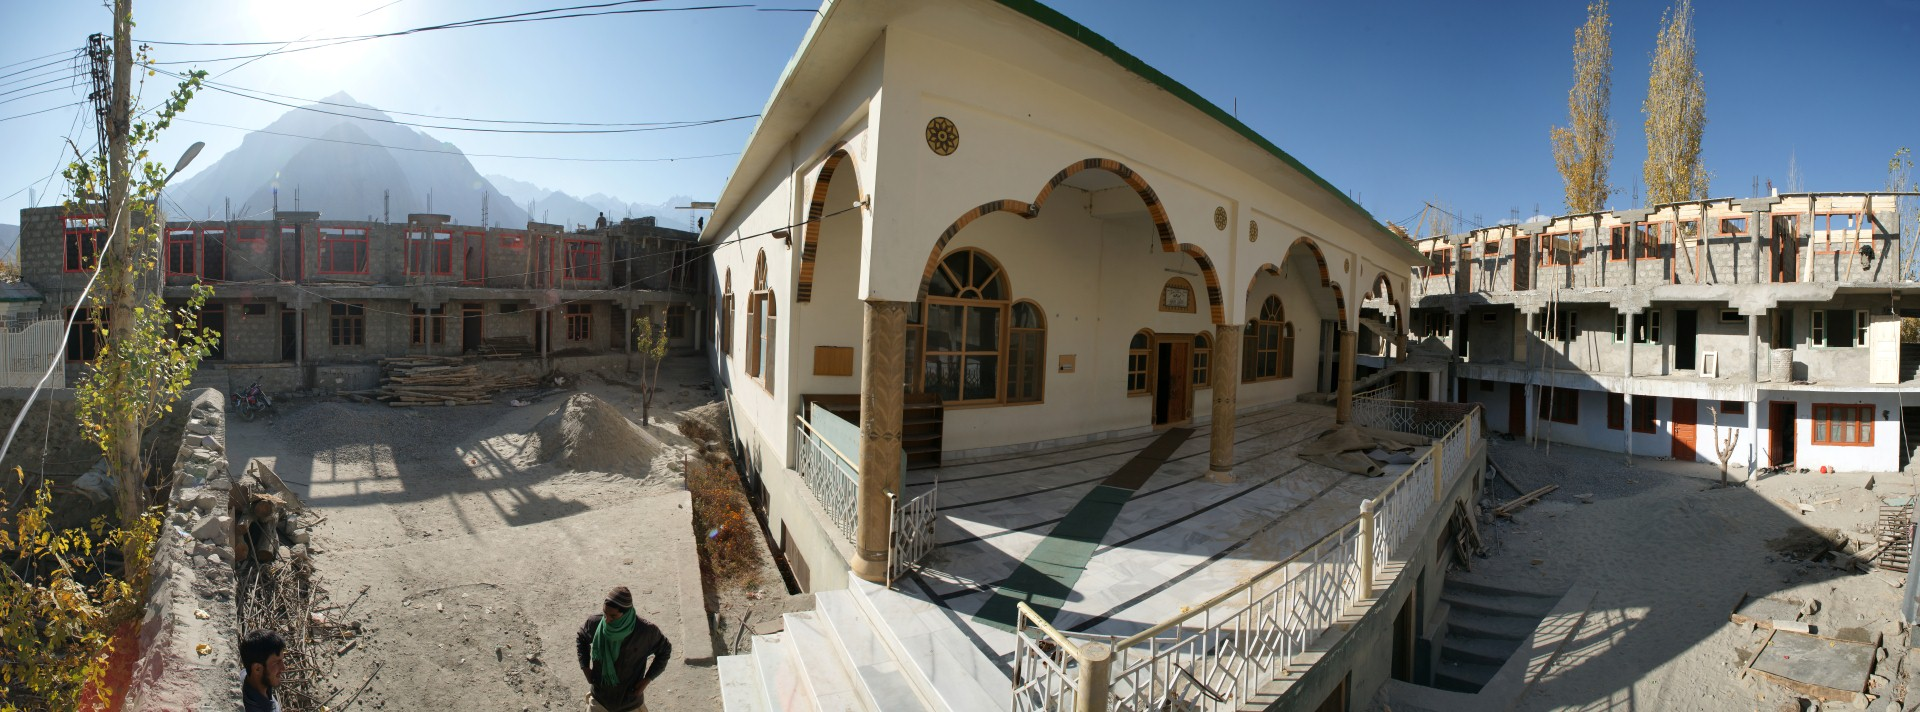 islam in baltistan The undefined status of gilgit-baltistan has always unnerved islamabad the recently concluded china-pakistan economic corridor (cpec) offers the possibility to absorb gilgit-baltistan in the larger national polity by making it a formal province of pakistan.